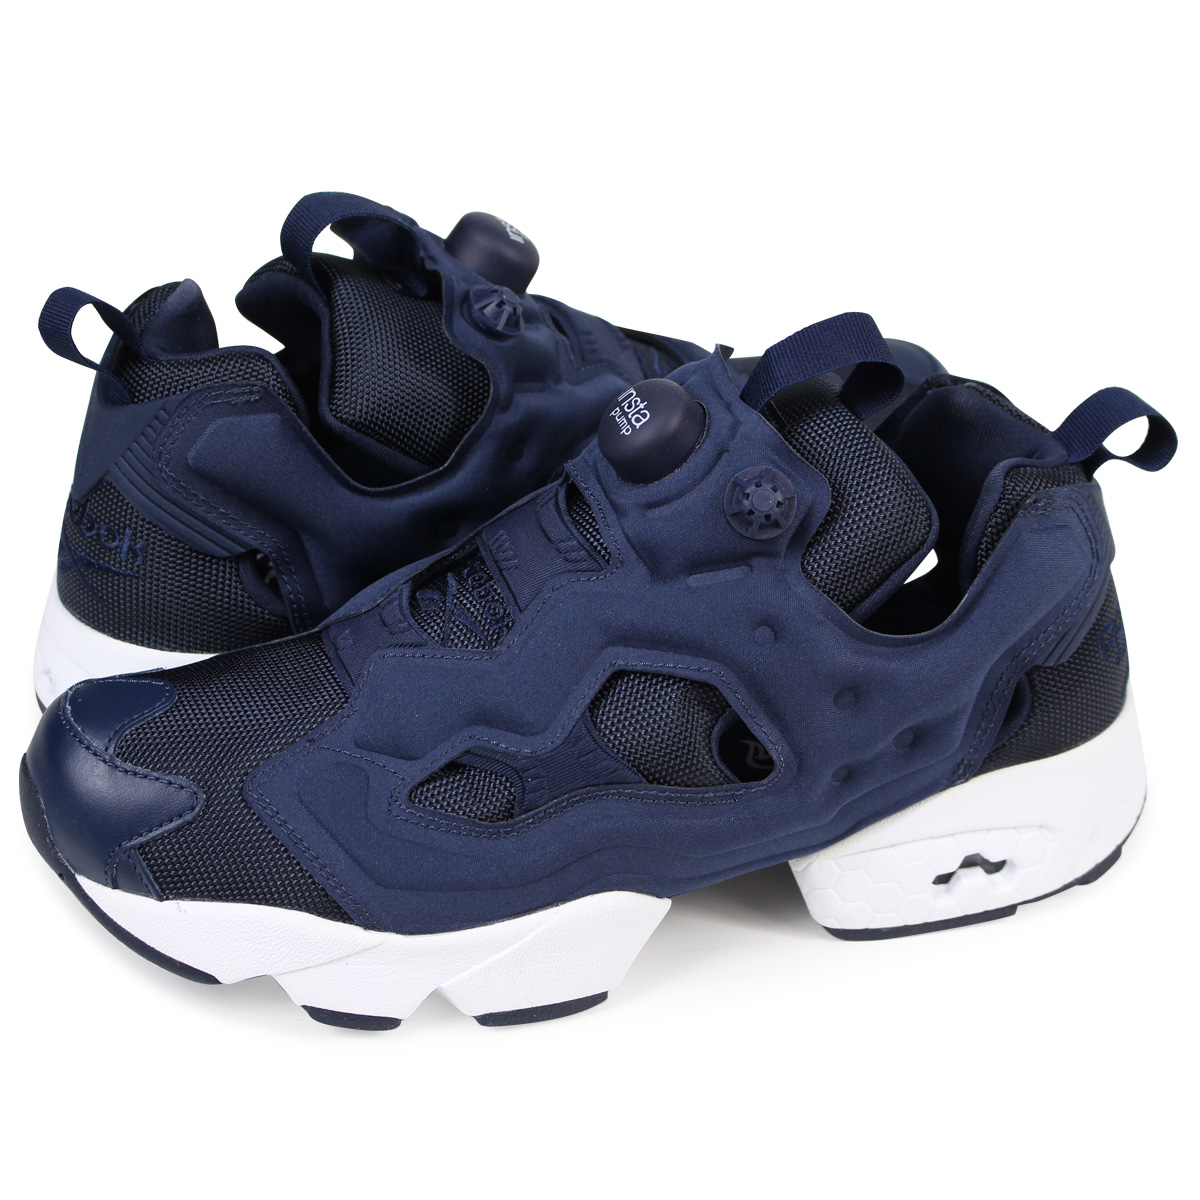 reebok pump shoes